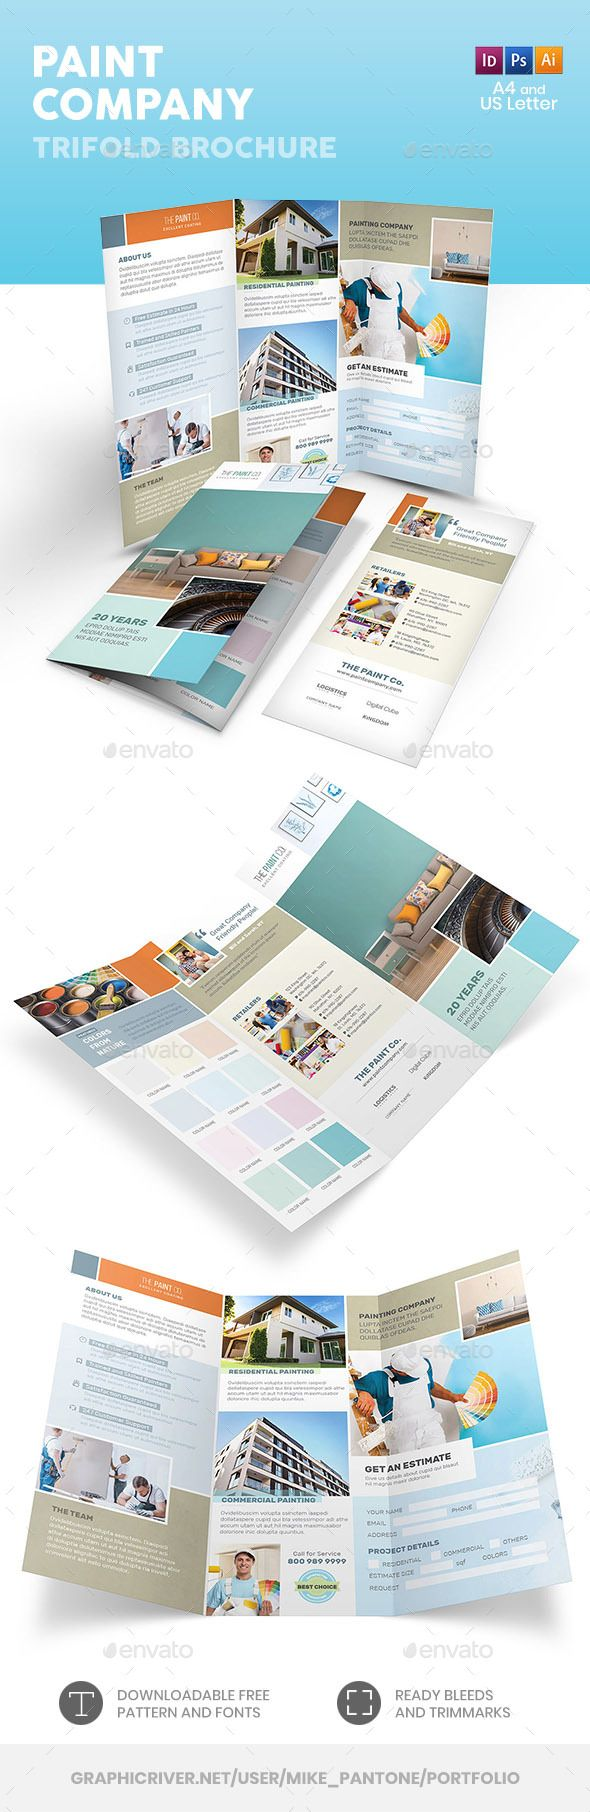 Paint Company Trifold Brochure Template Psd Vector Eps Indesign